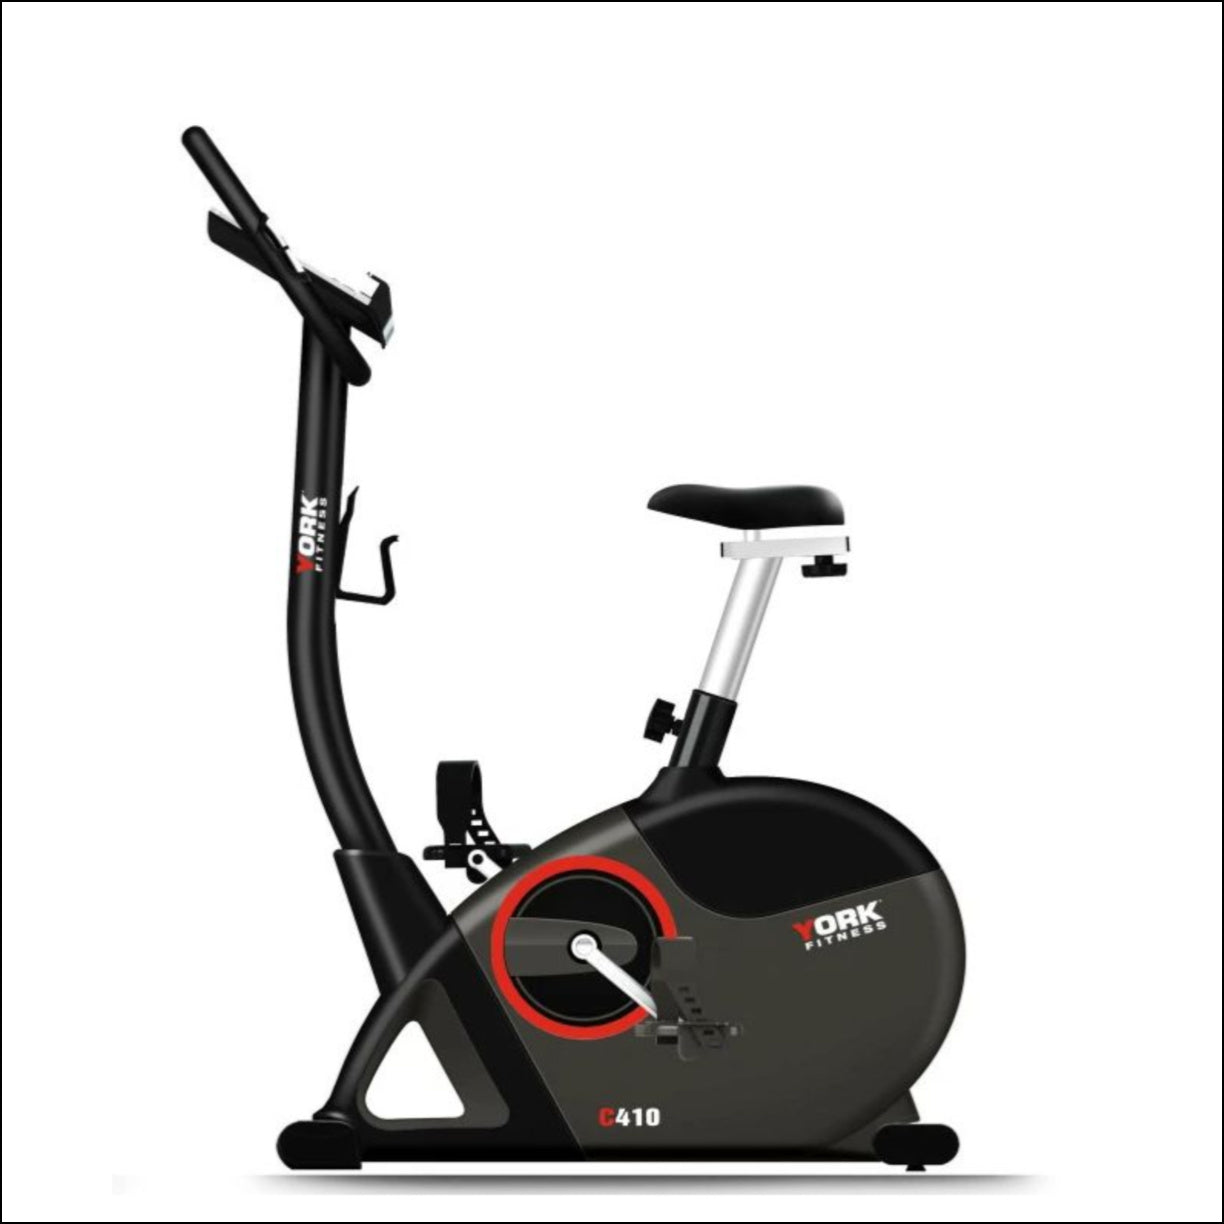 York C410 upright bike offers great value and is packed with many features. With it's large cushioned seat, rack and slide seat adjustment, stabilizers for uneven surfaces and wheel for easy transportation the C410 is perfect for home use